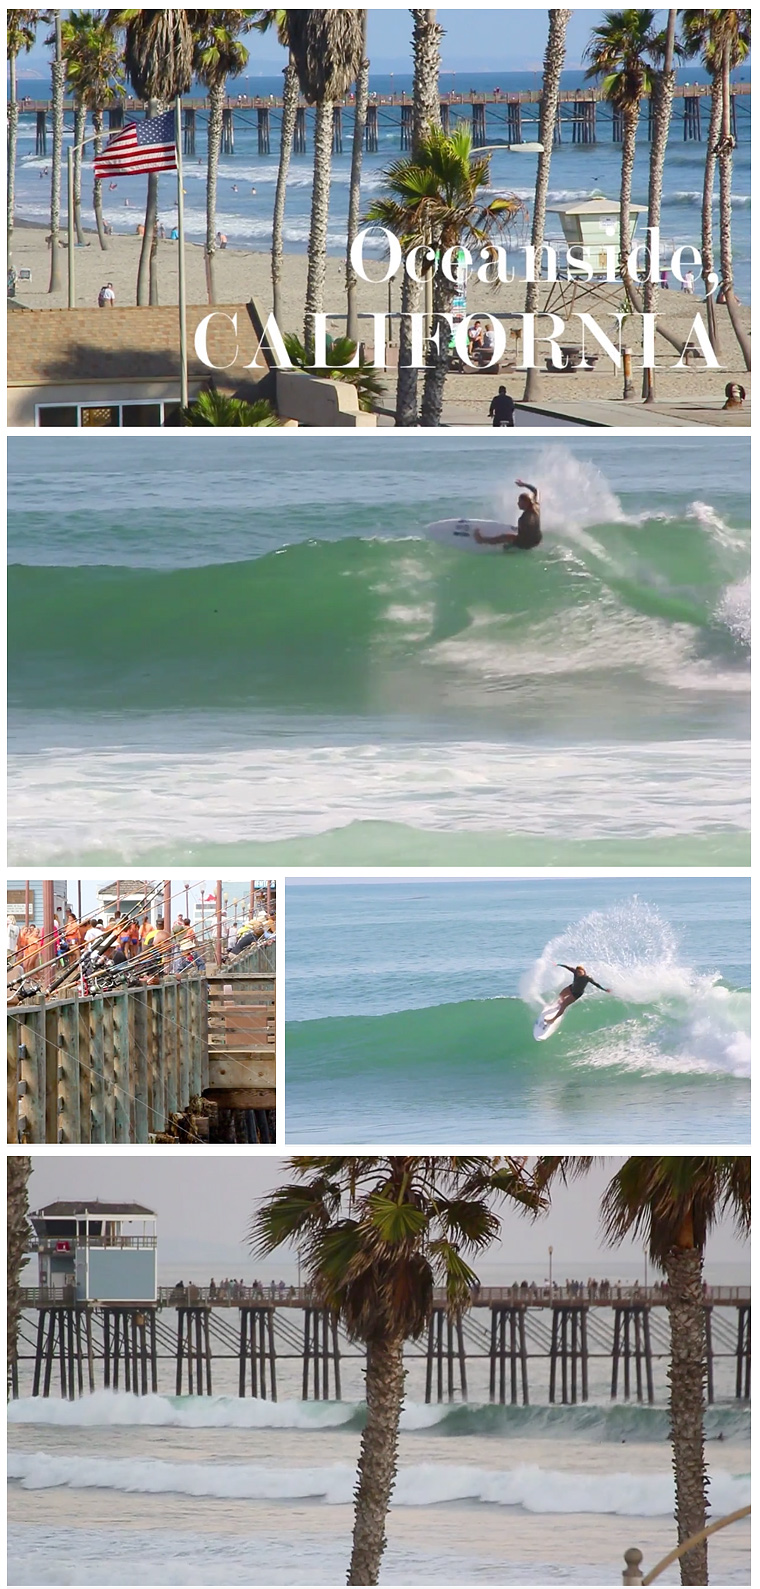 Dimity Stoyle photo collage from the video Oceanside, California. Now playing on Jettygirl Online Surf Magazine